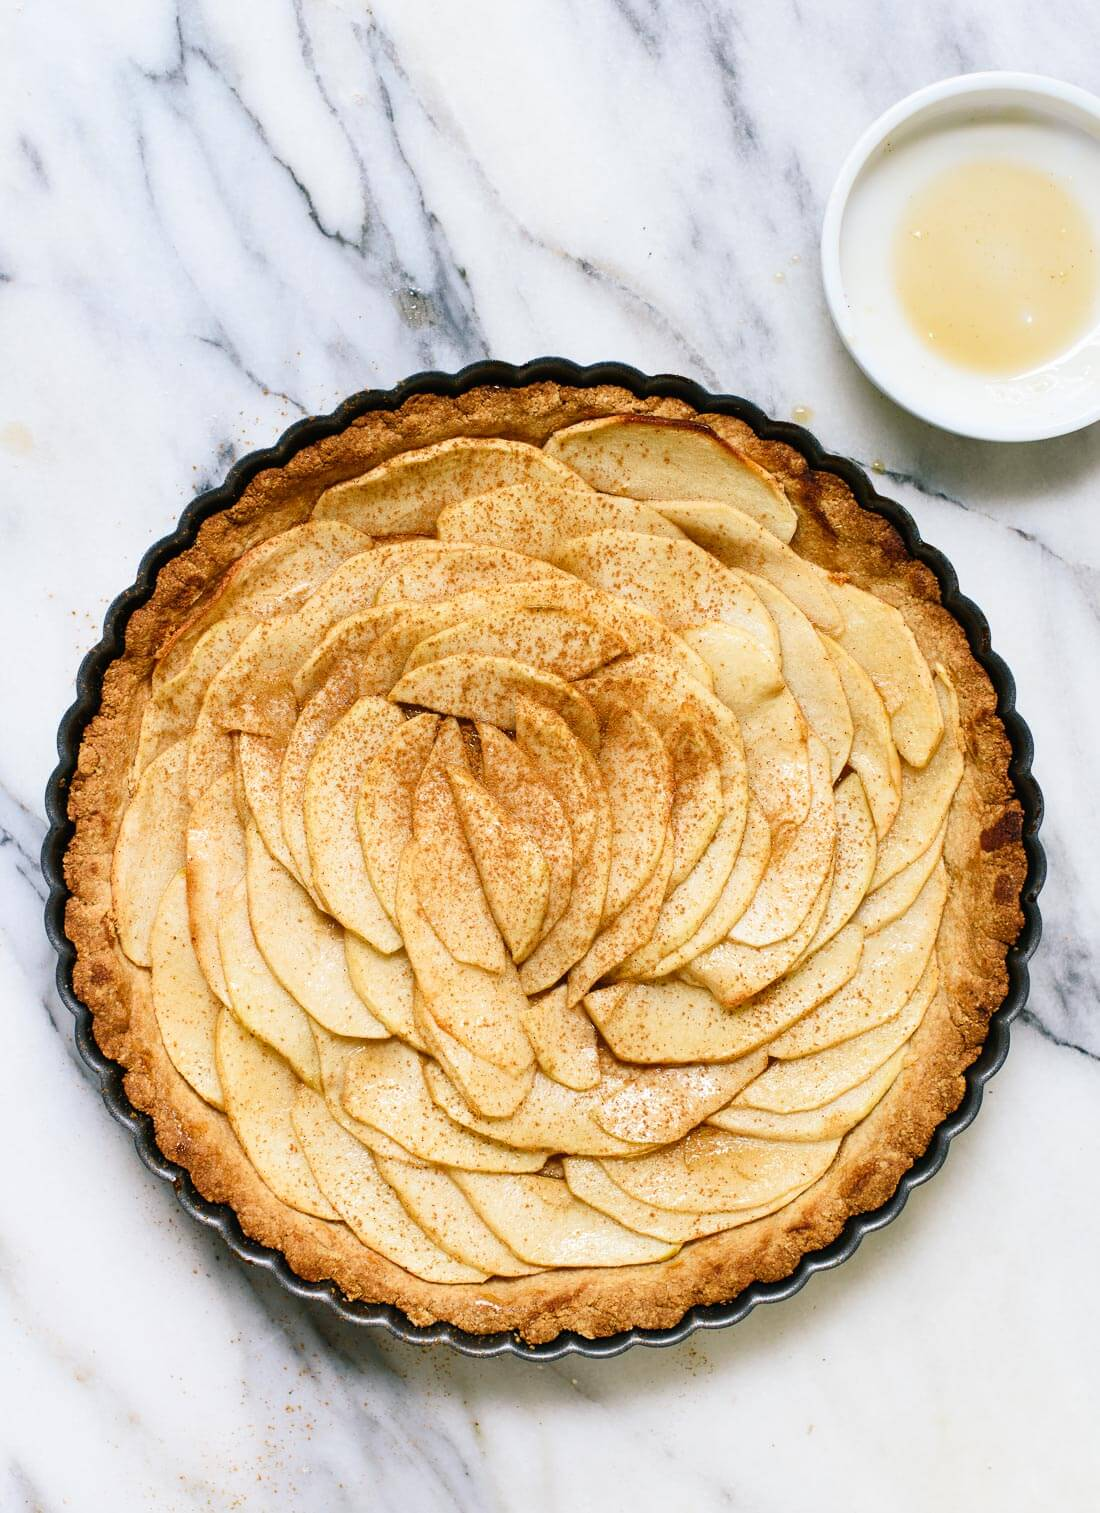 This delicious apple tart features an easy crust made with almond and oat flour. It's gluten free and easily made vegan/dairy free, too! cookieandkate.com